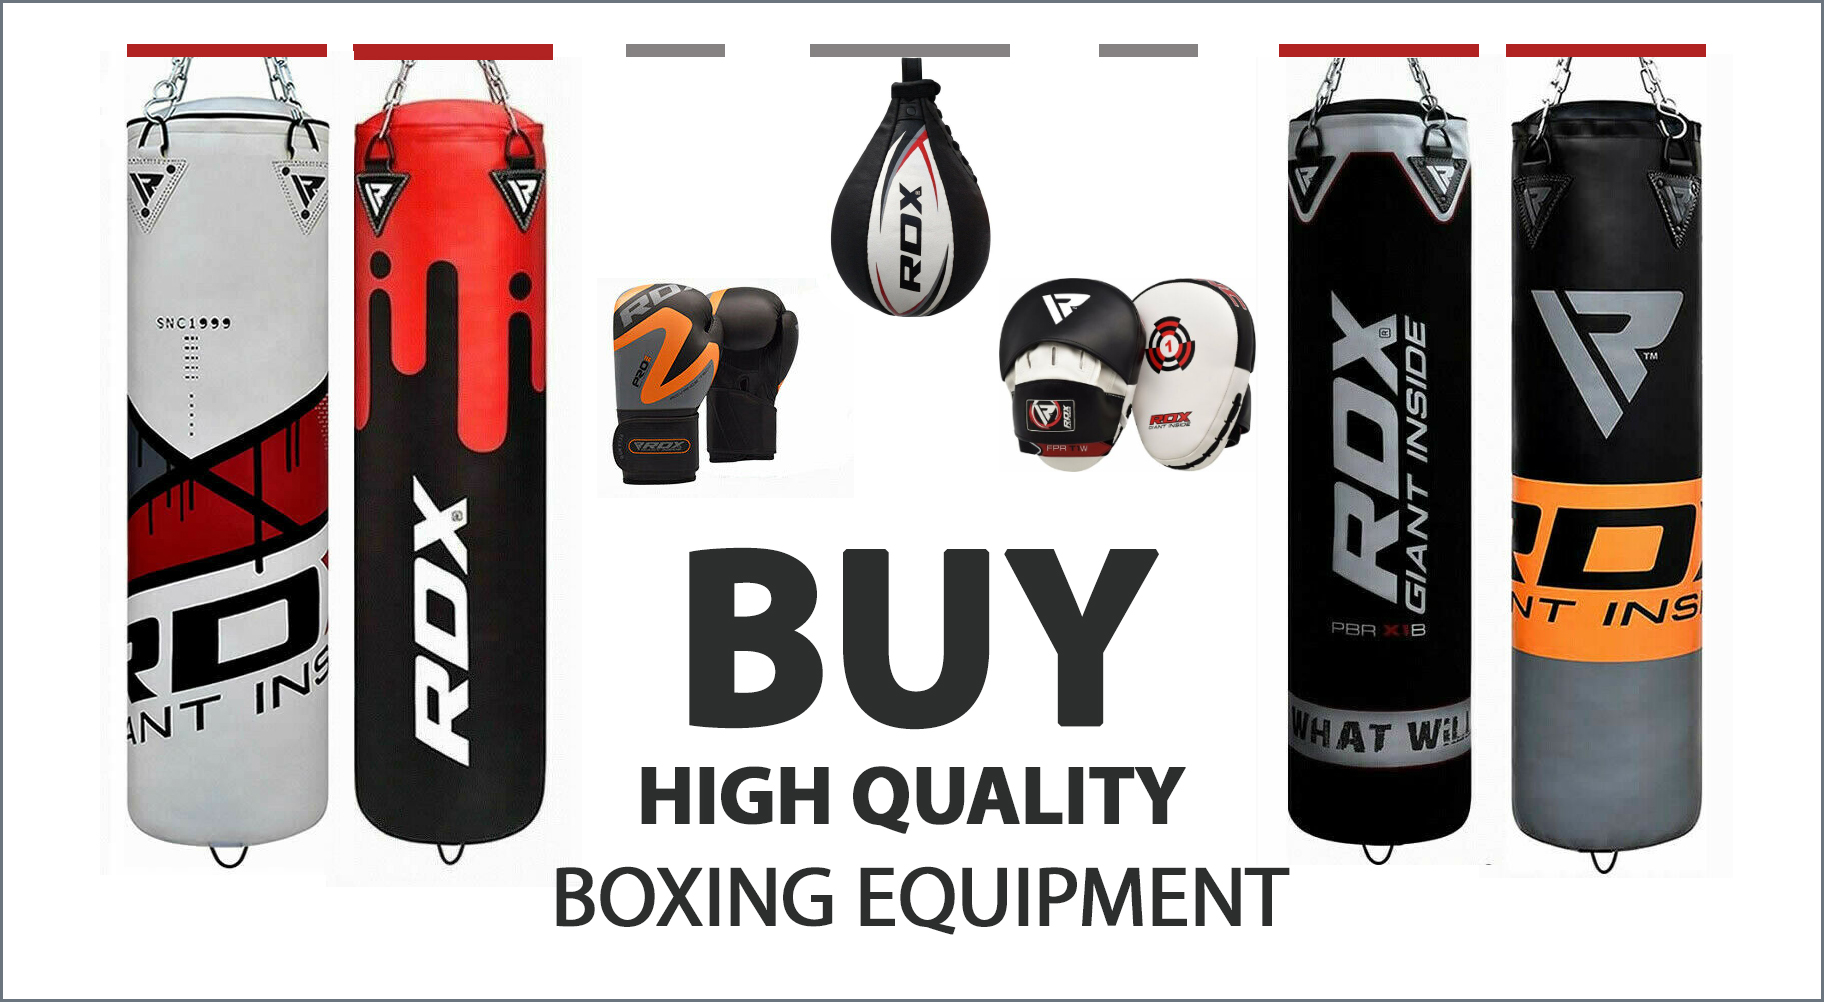 Quality boxing equipment